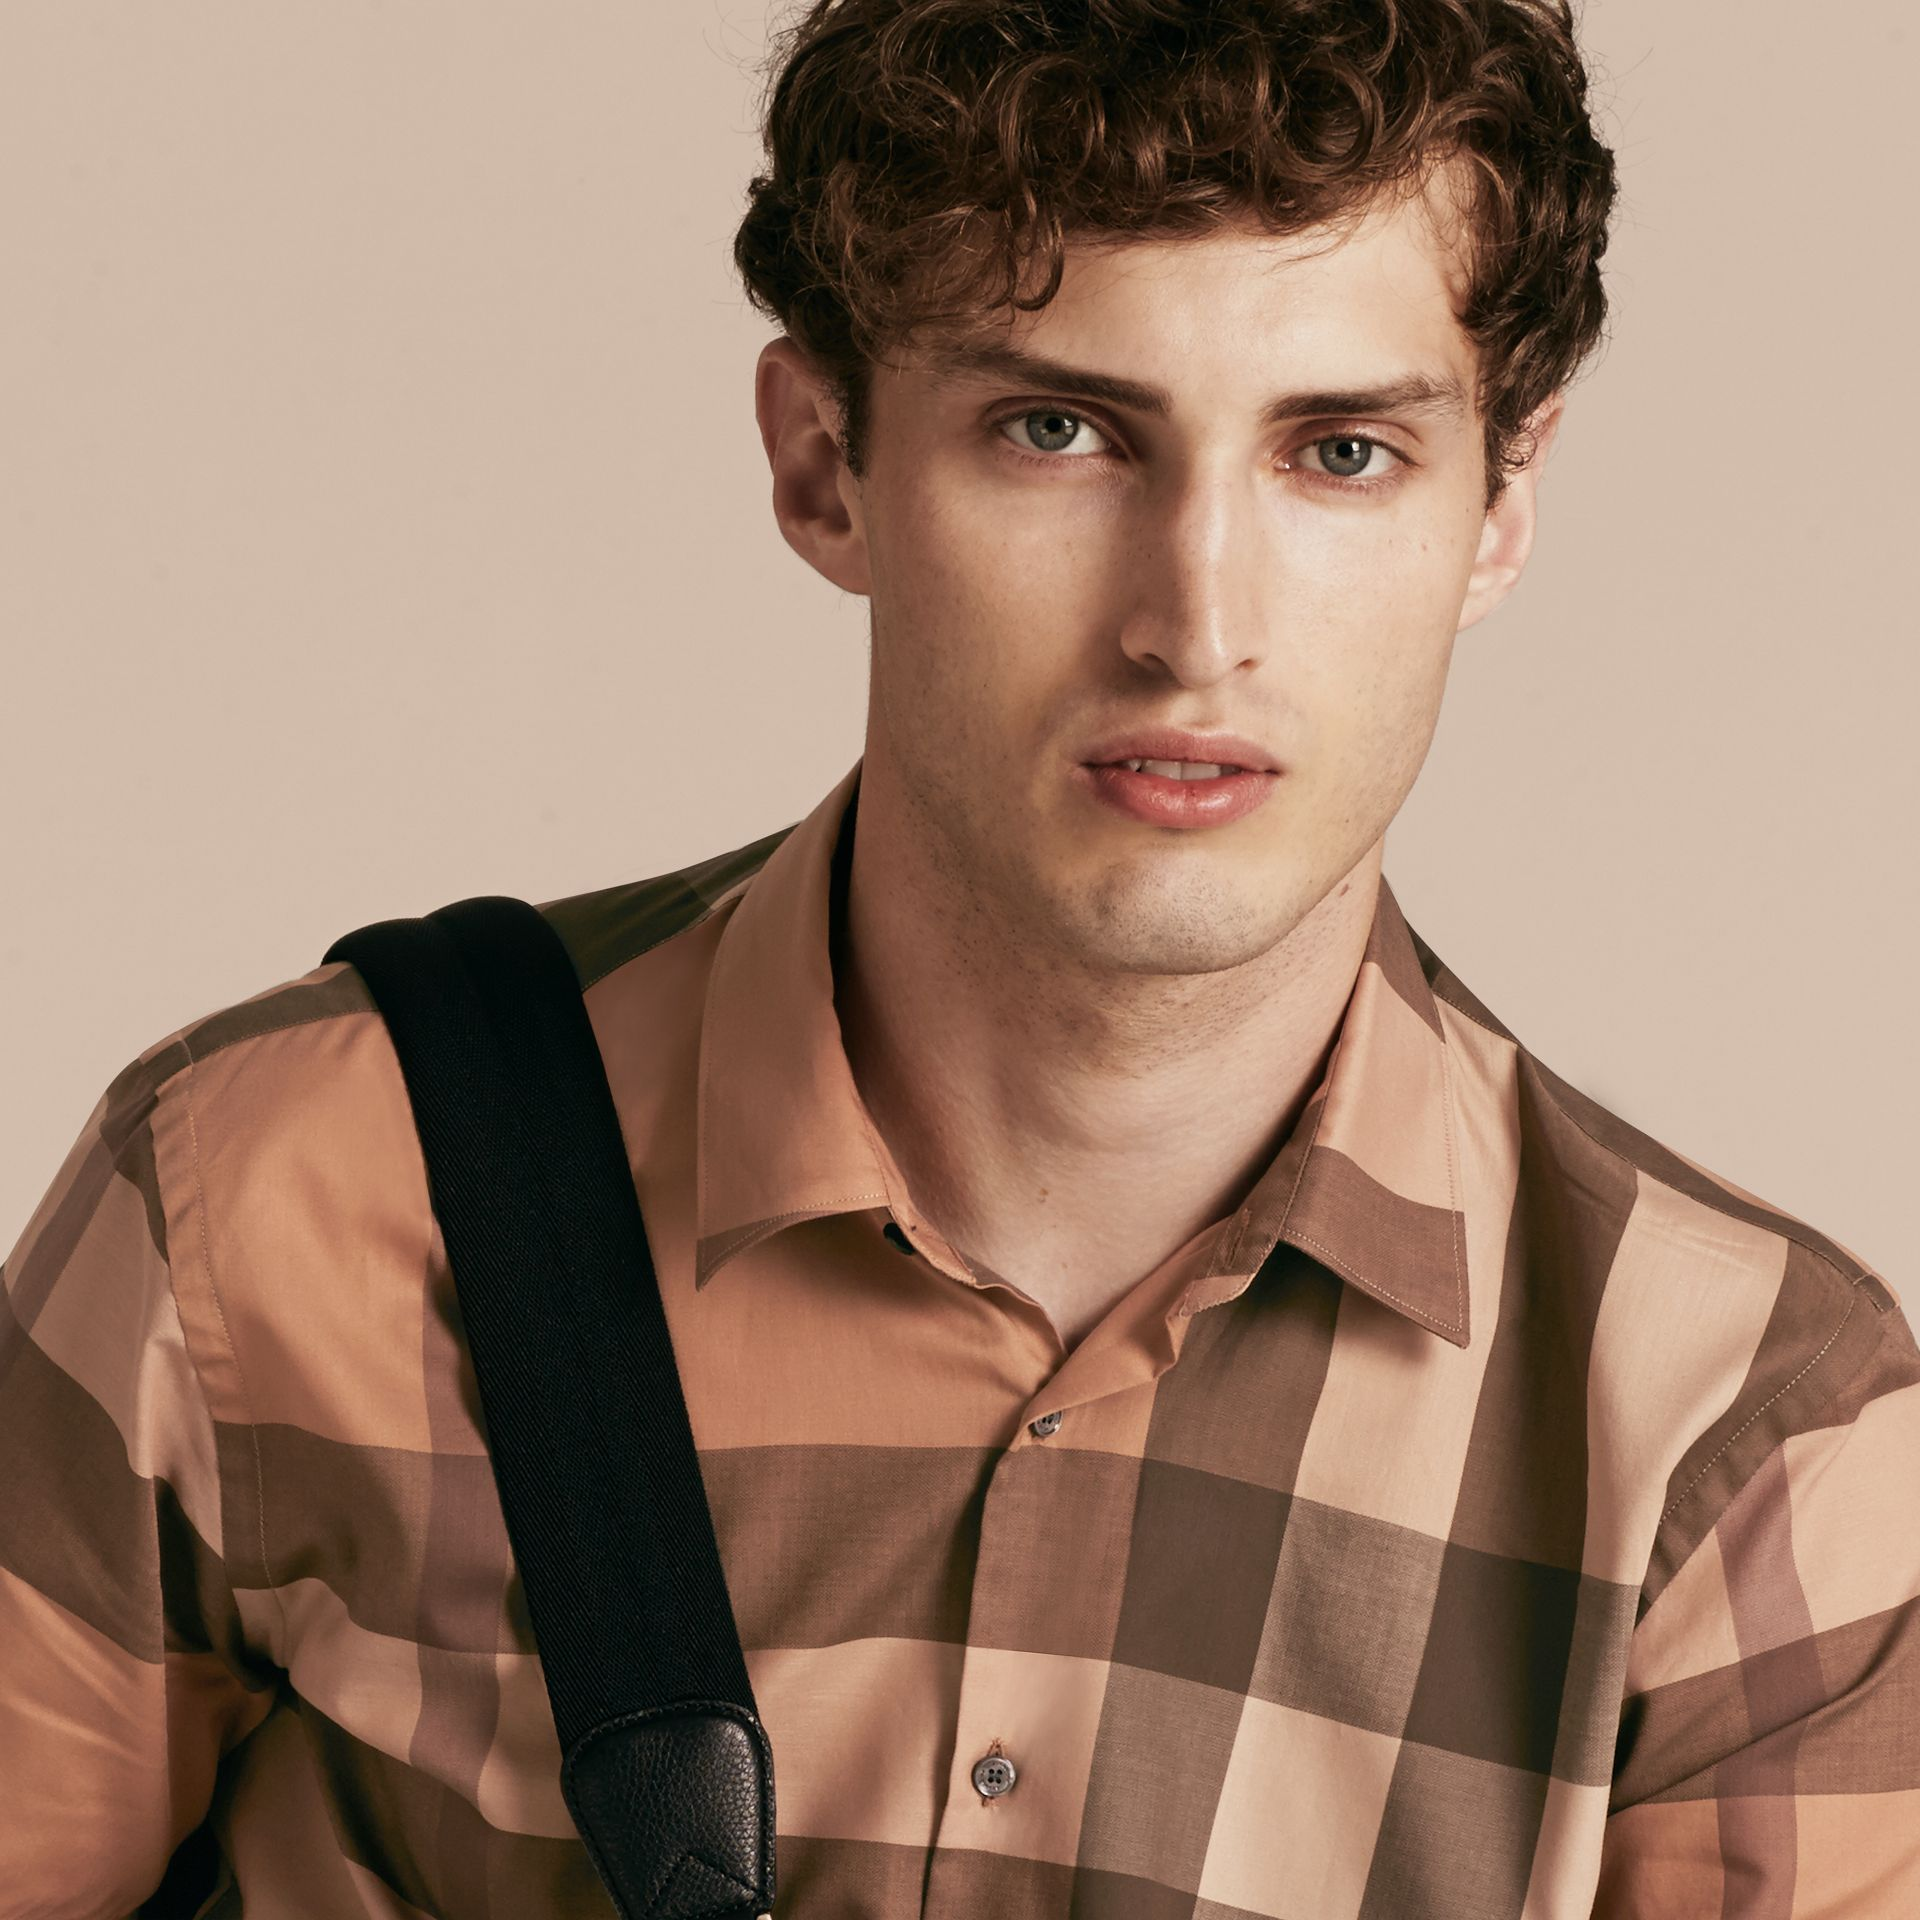 Dark camel Short-sleeved Check Cotton Shirt Dark Camel - gallery image 5